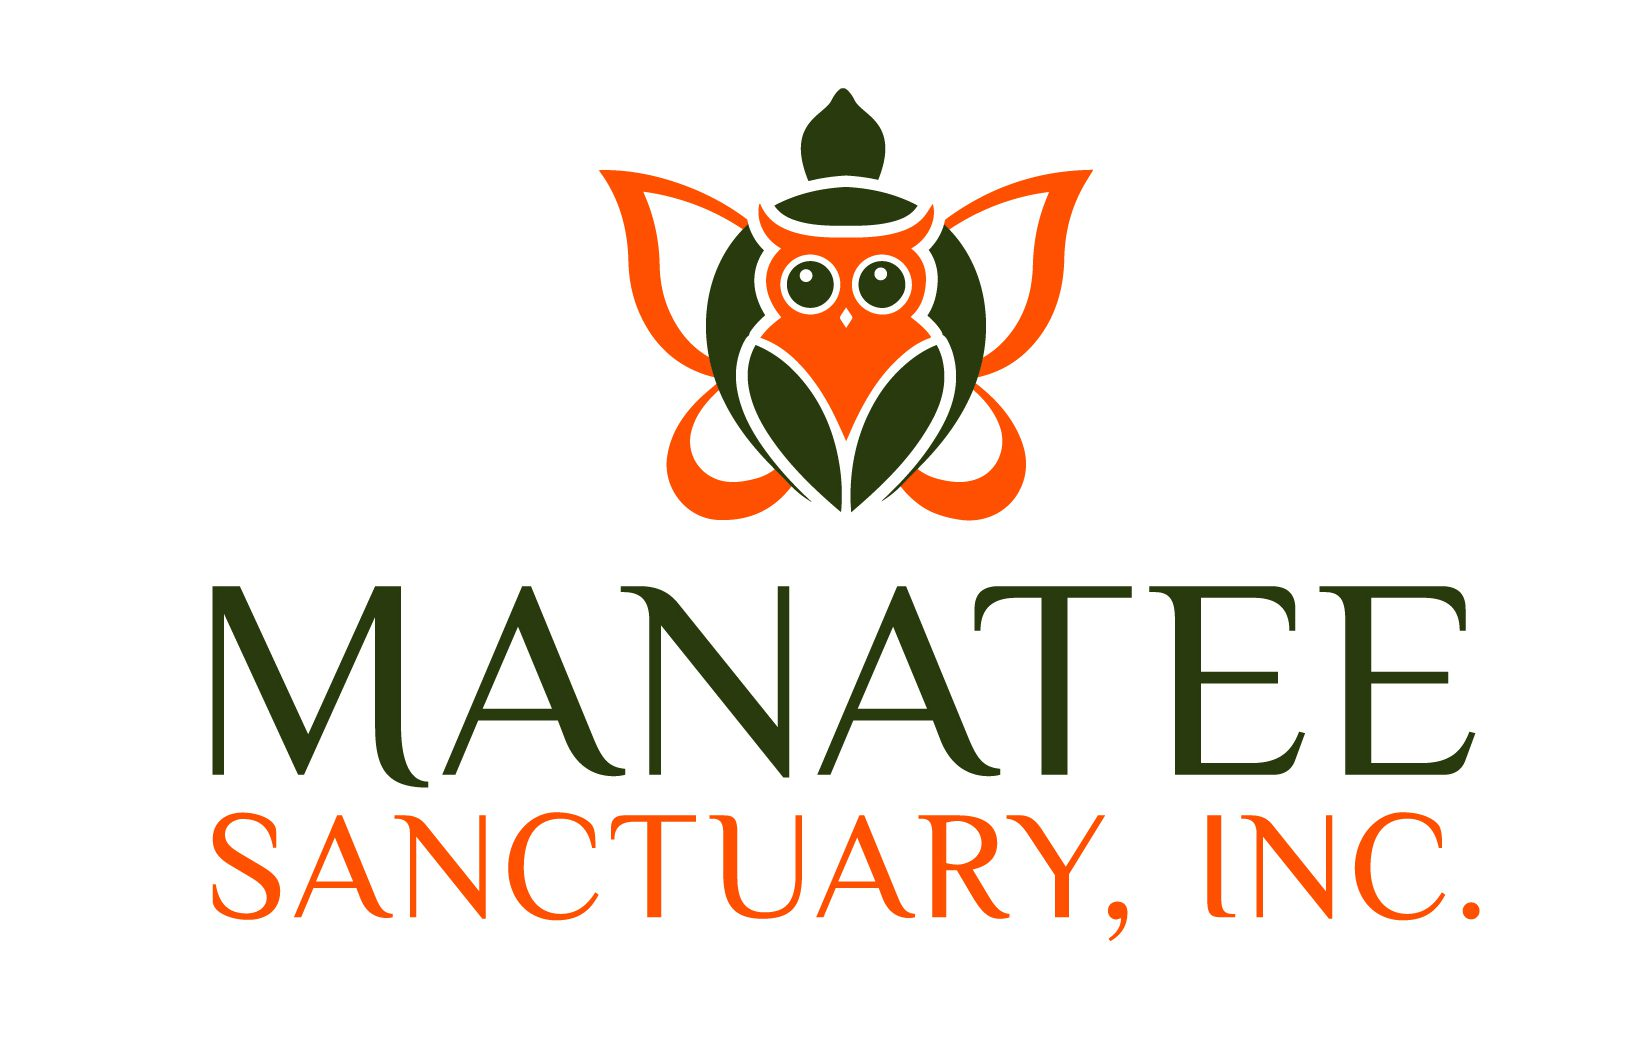 Manatee Sanctuary, inc.